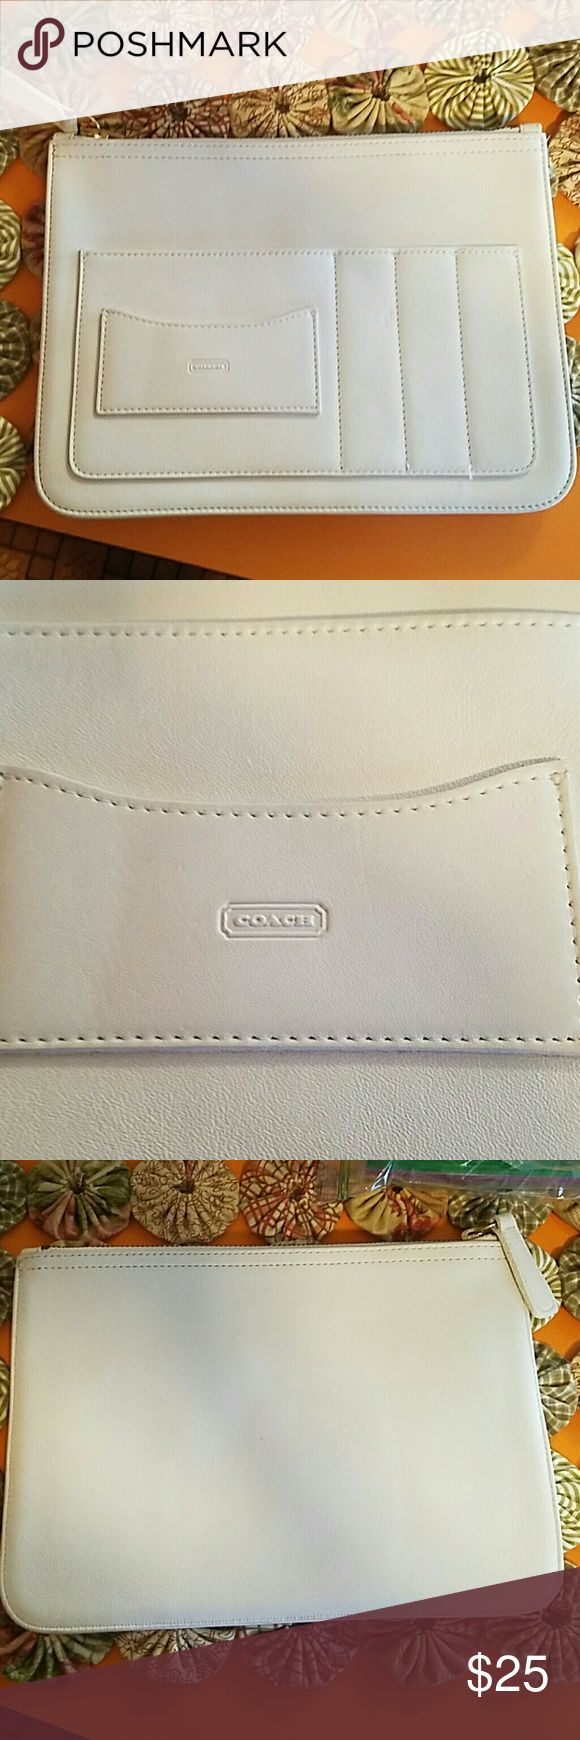 Coach business envelope This is an Immaculate bone colored business envelope / portfolio. The perfect size. Coach Bags Wallets